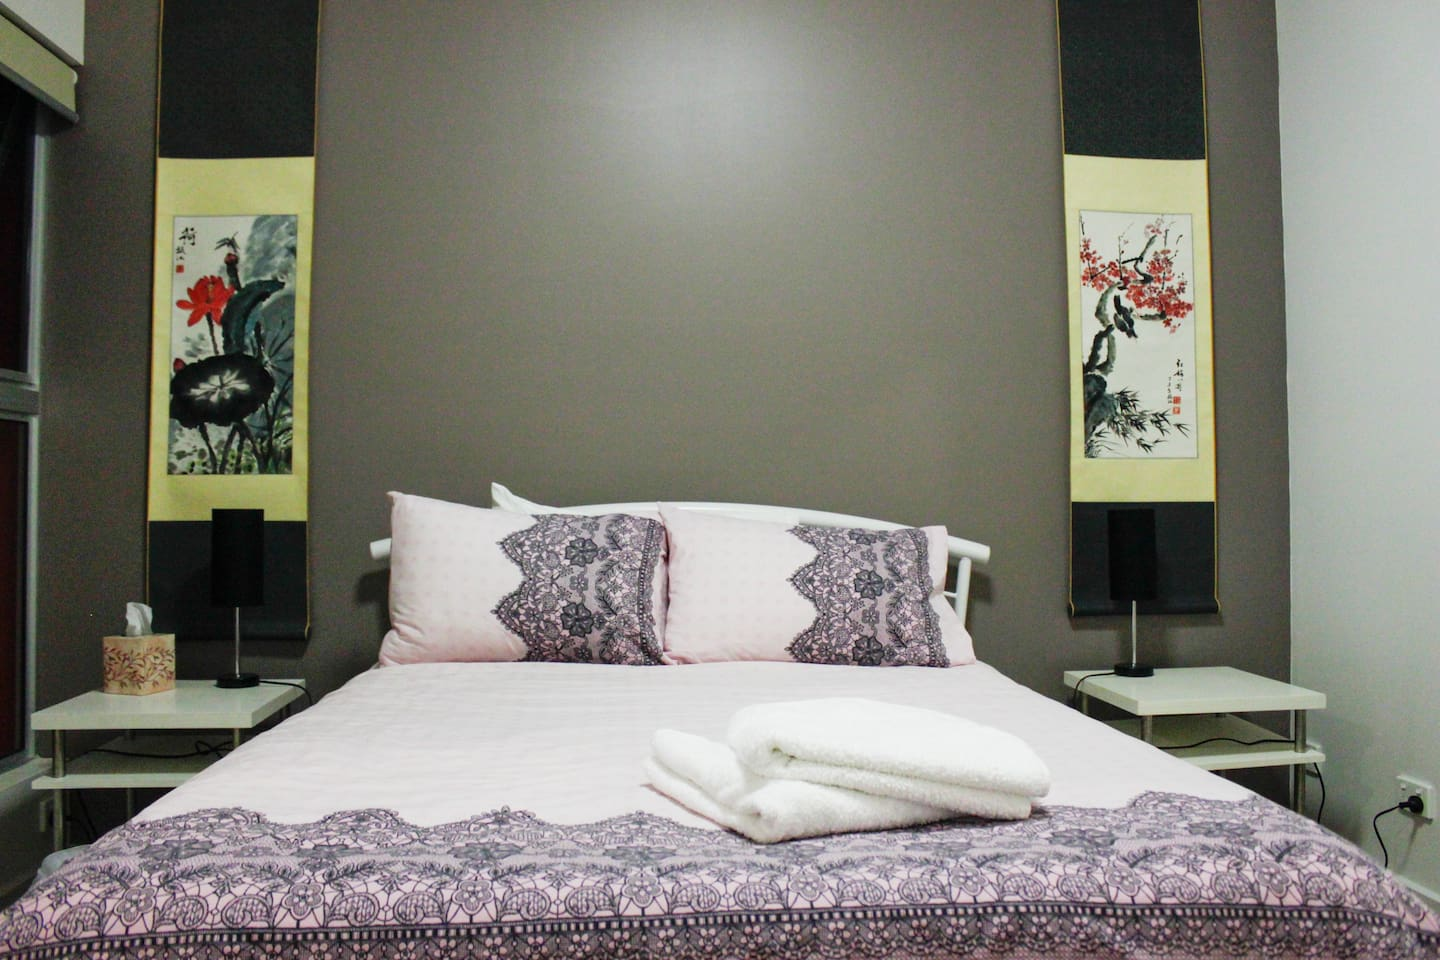 Main bedroom with Chinese paintings.